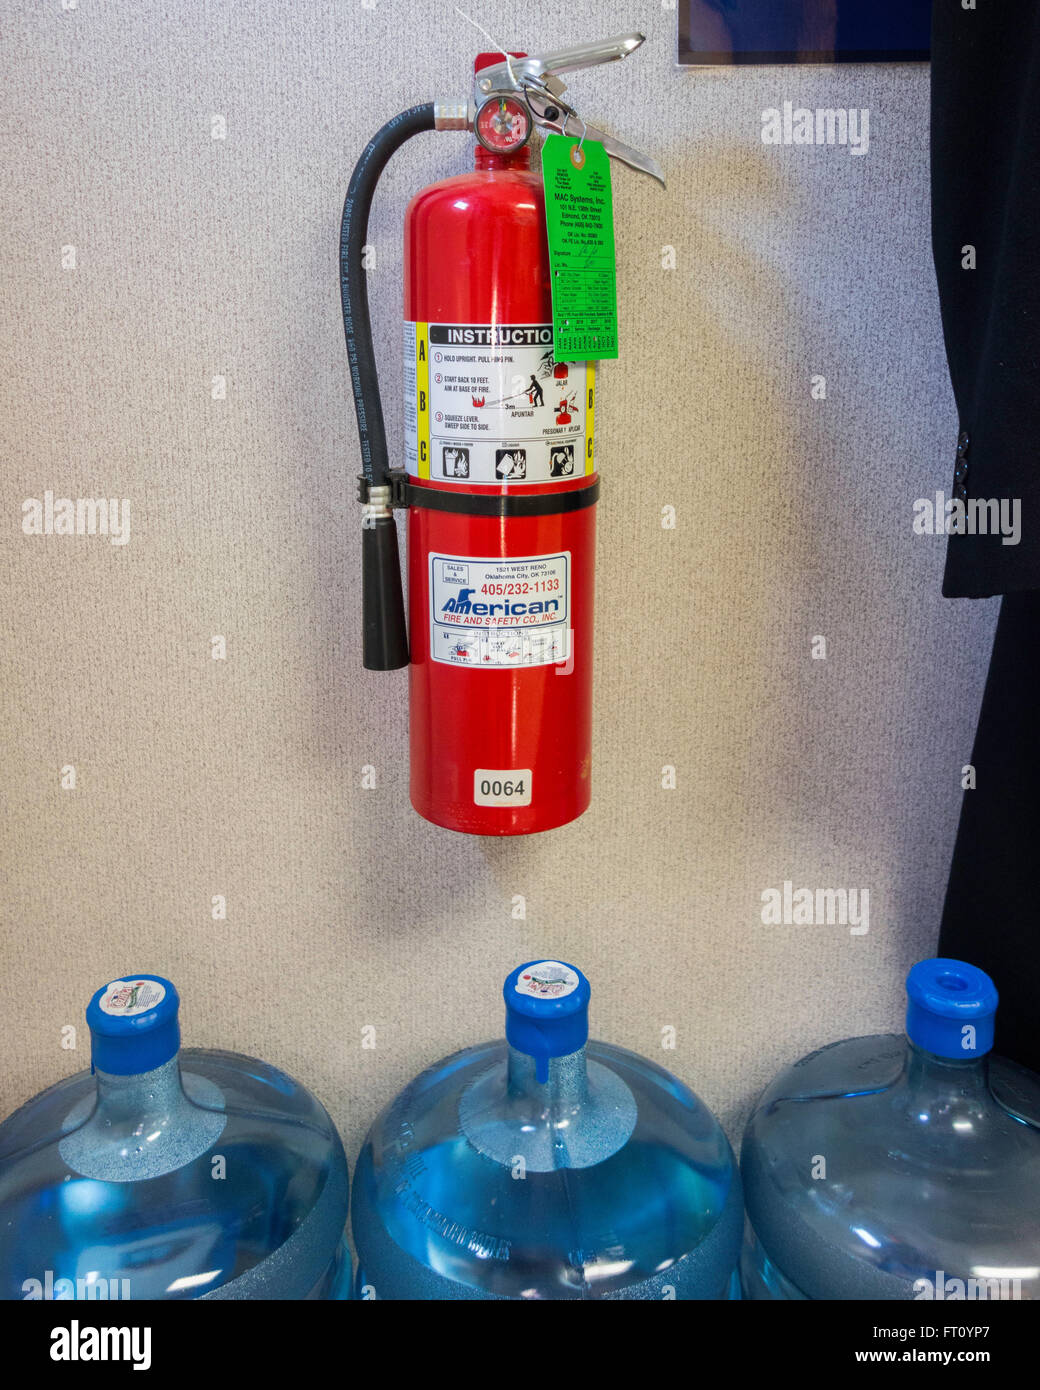 A mandatory fire extinguisher hangs on a wall over 3 five gallon water bottles in a storage area of a business. - Stock Image